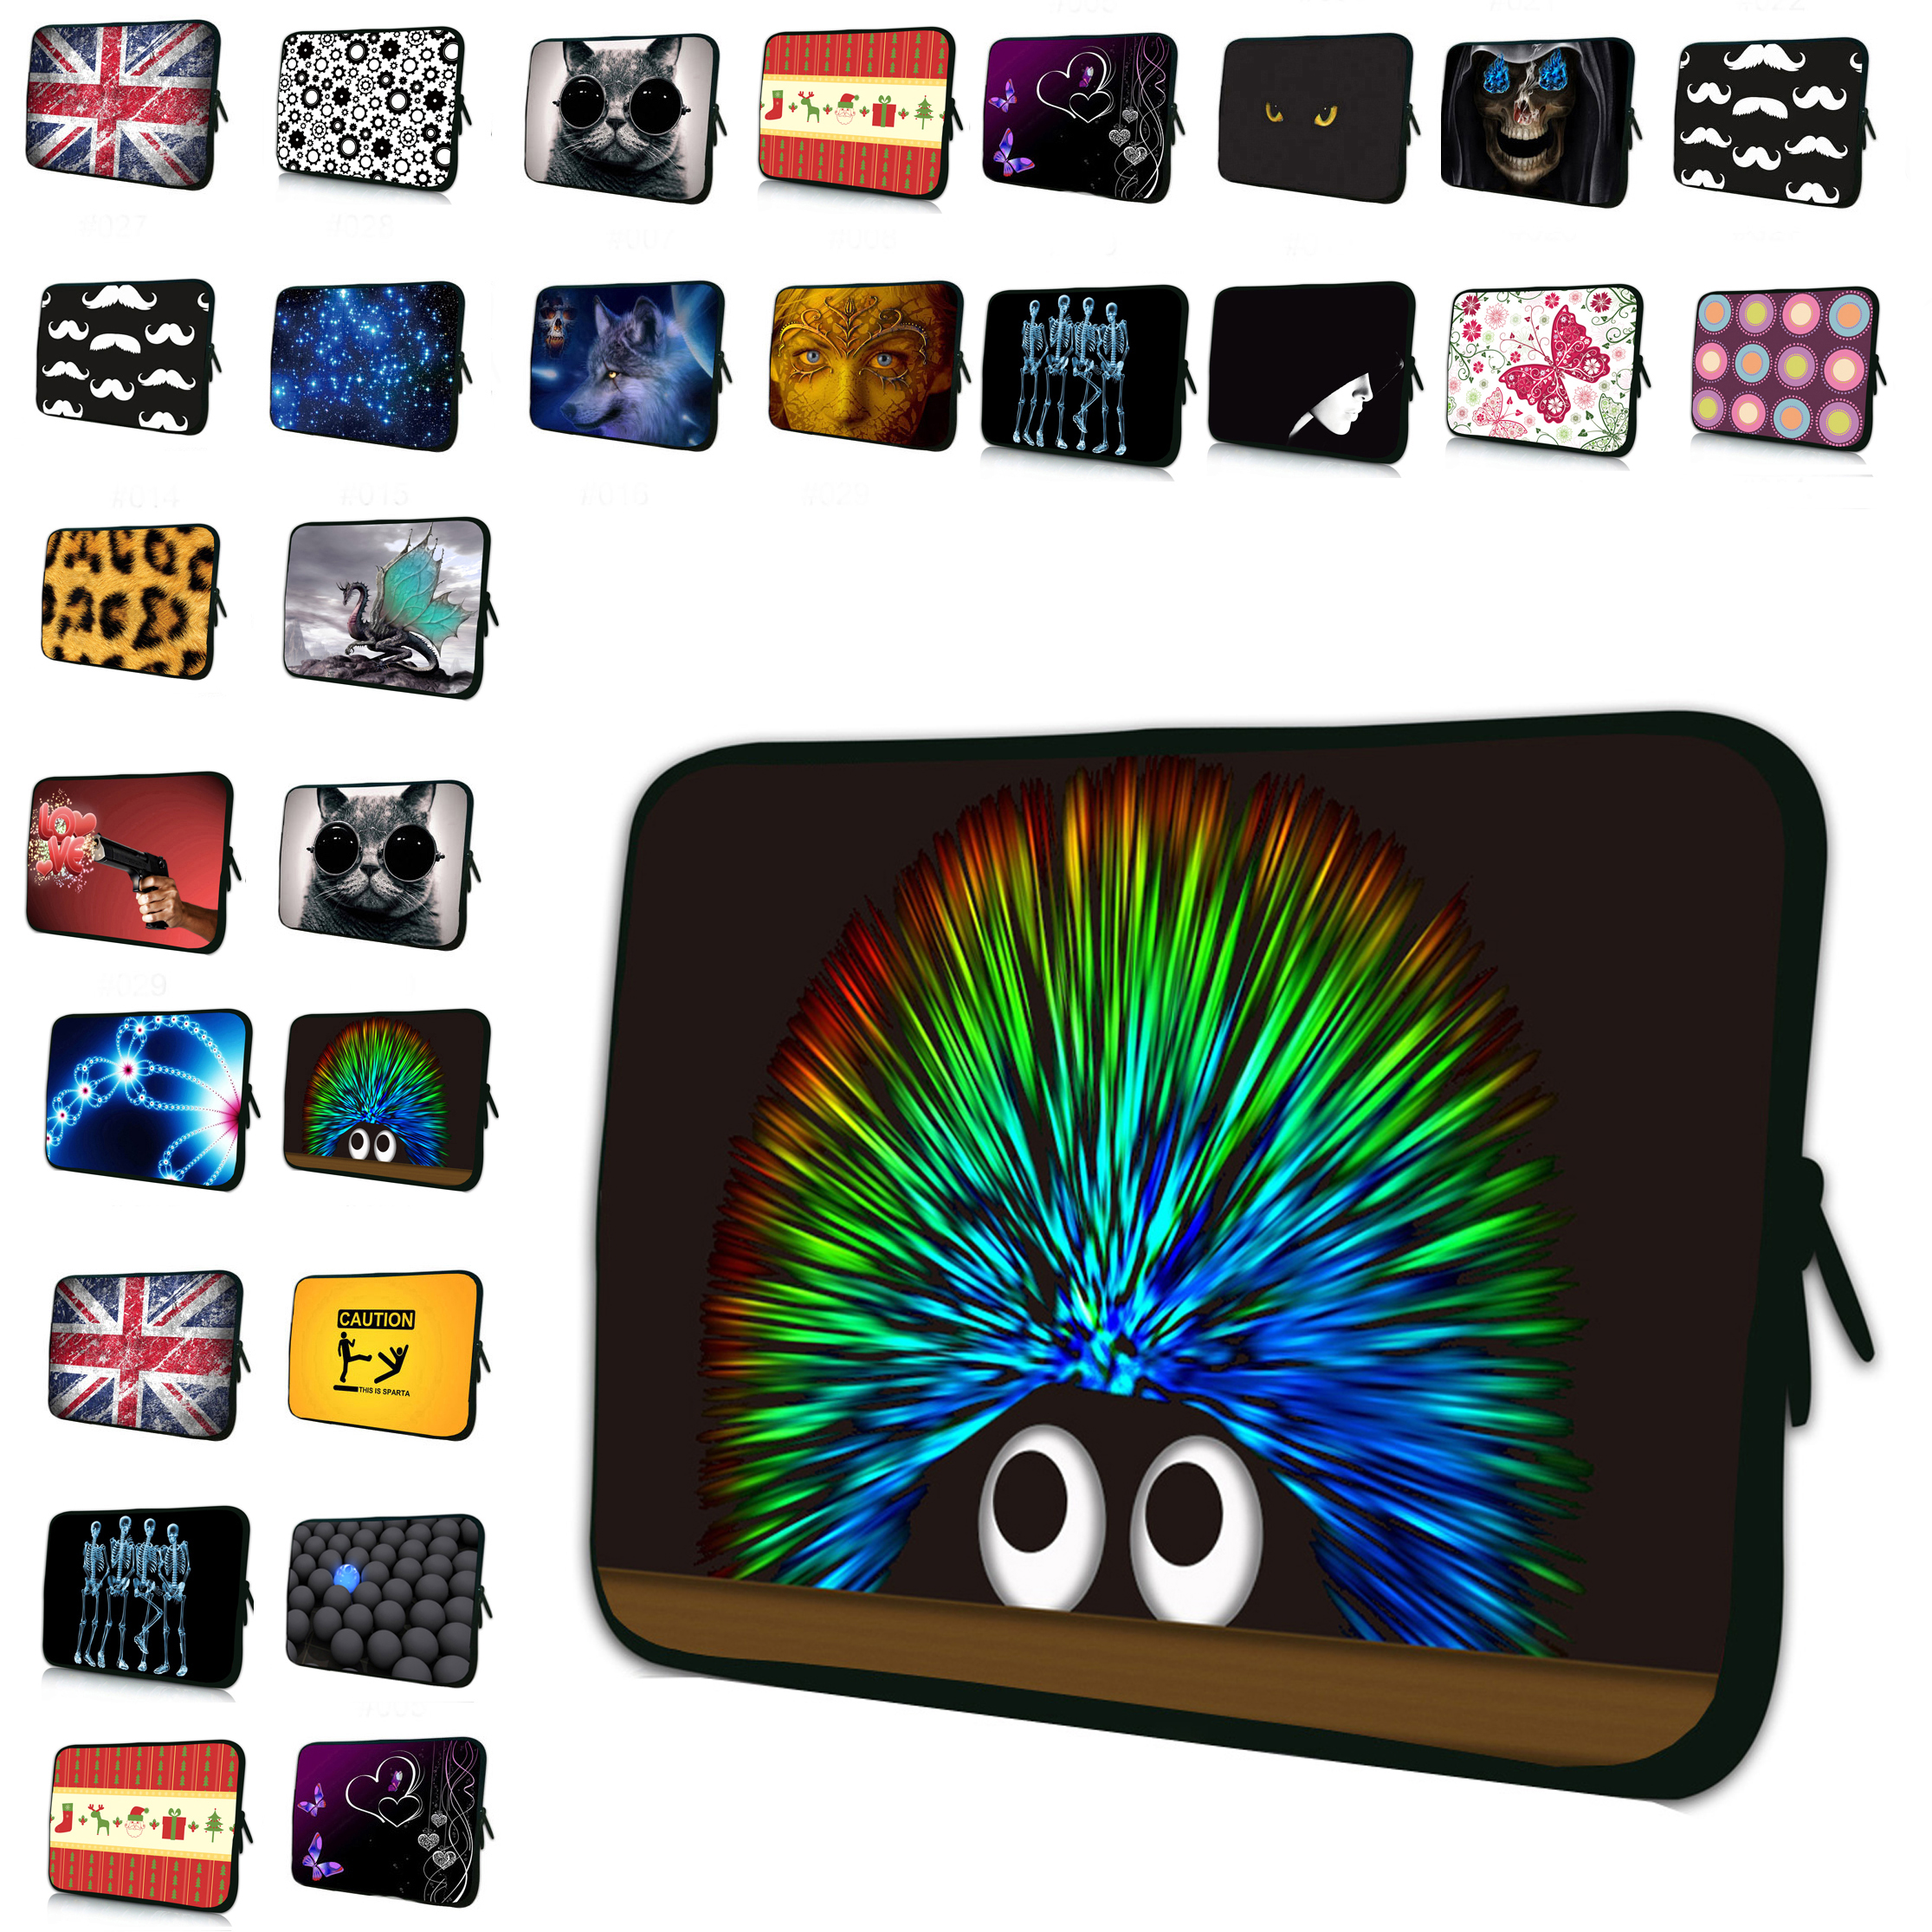 Colorful Tablet Sleeve Bag Cover Pouch Protector For Unversal 10 inch Funda Tablet For Ipad Air 9.7 Samsung Galaxy Note 10.1 Tab